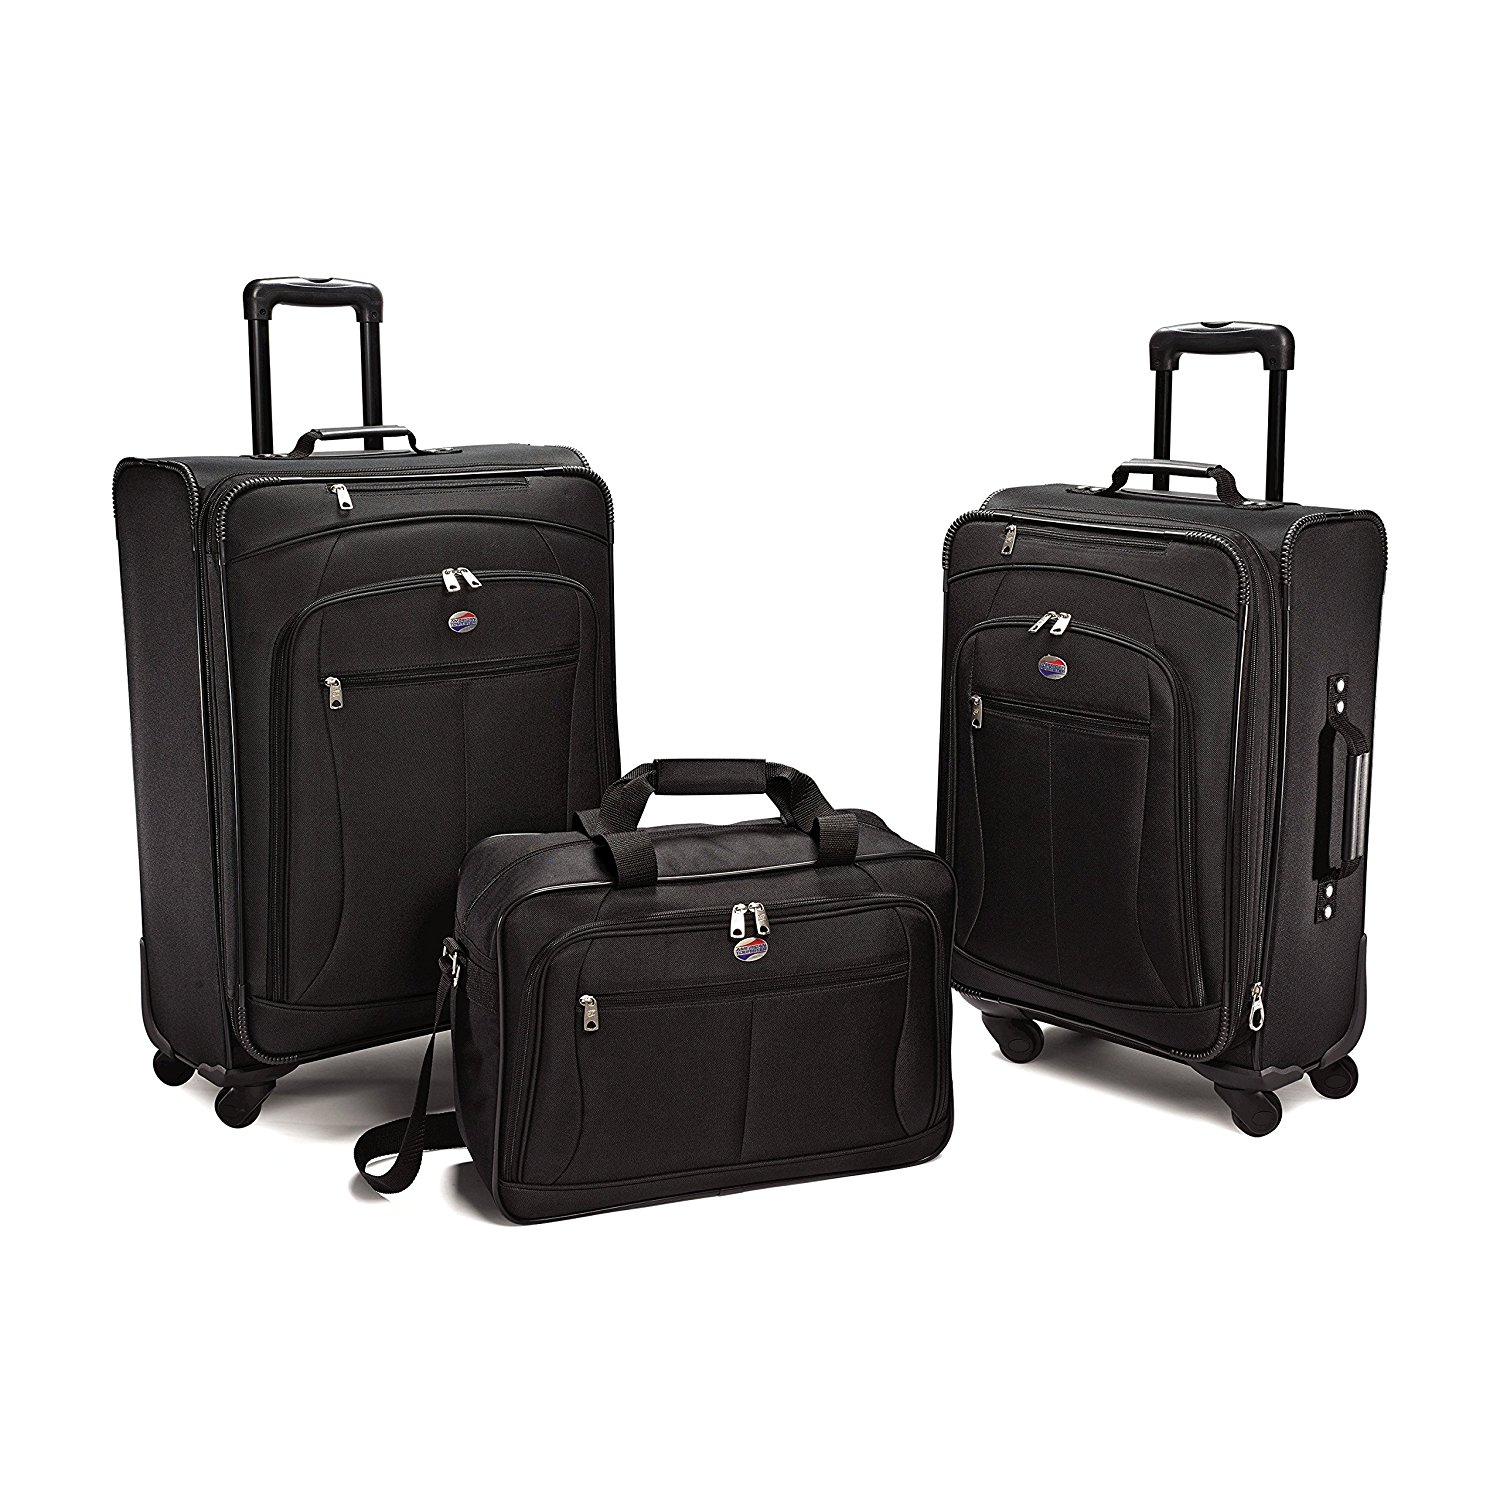 4f268b03947 Get Quotations · American Tourister Pop Plus 3 Piece Luggage Set